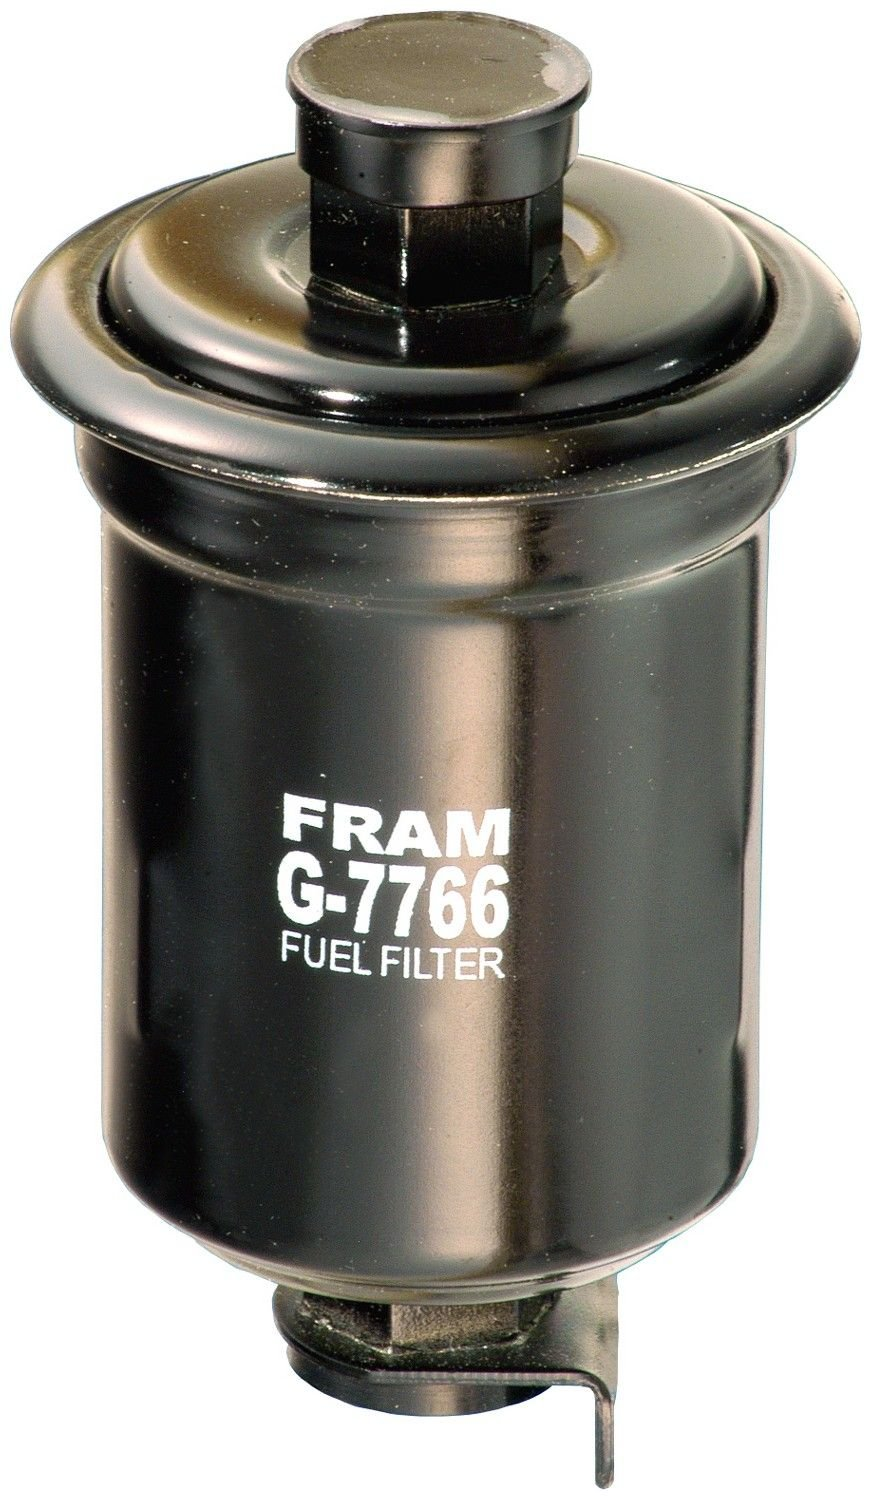 Toyota Camry Fuel Filter Replacement Beck Arnley Fram Hastings 2009 Location 1992 4 Cyl 22l G7766 In Line Recommended Based On Current Original Equipment Requirements Unit Box Product